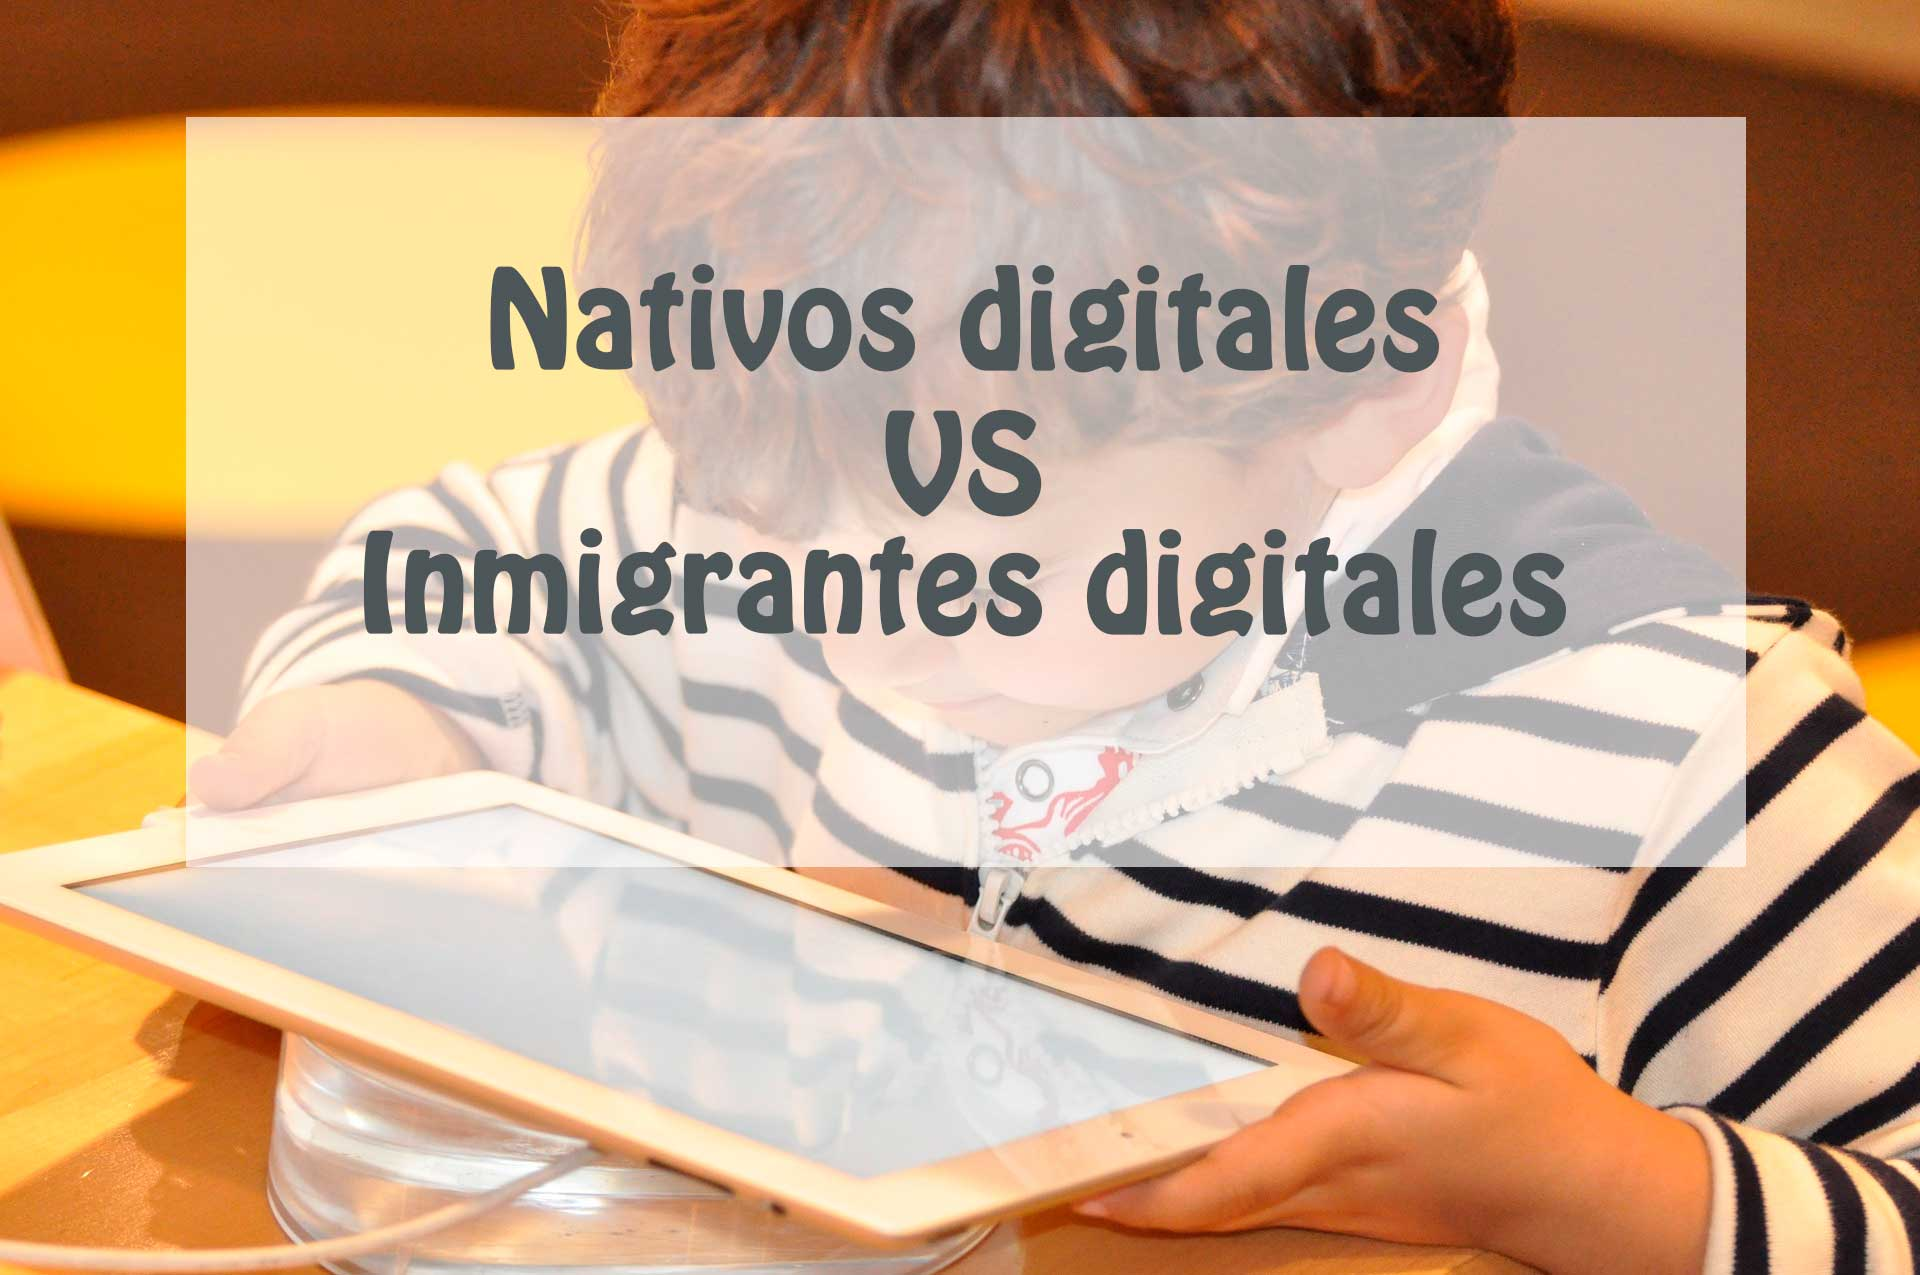 Nativo digital frente al inmigrante digital